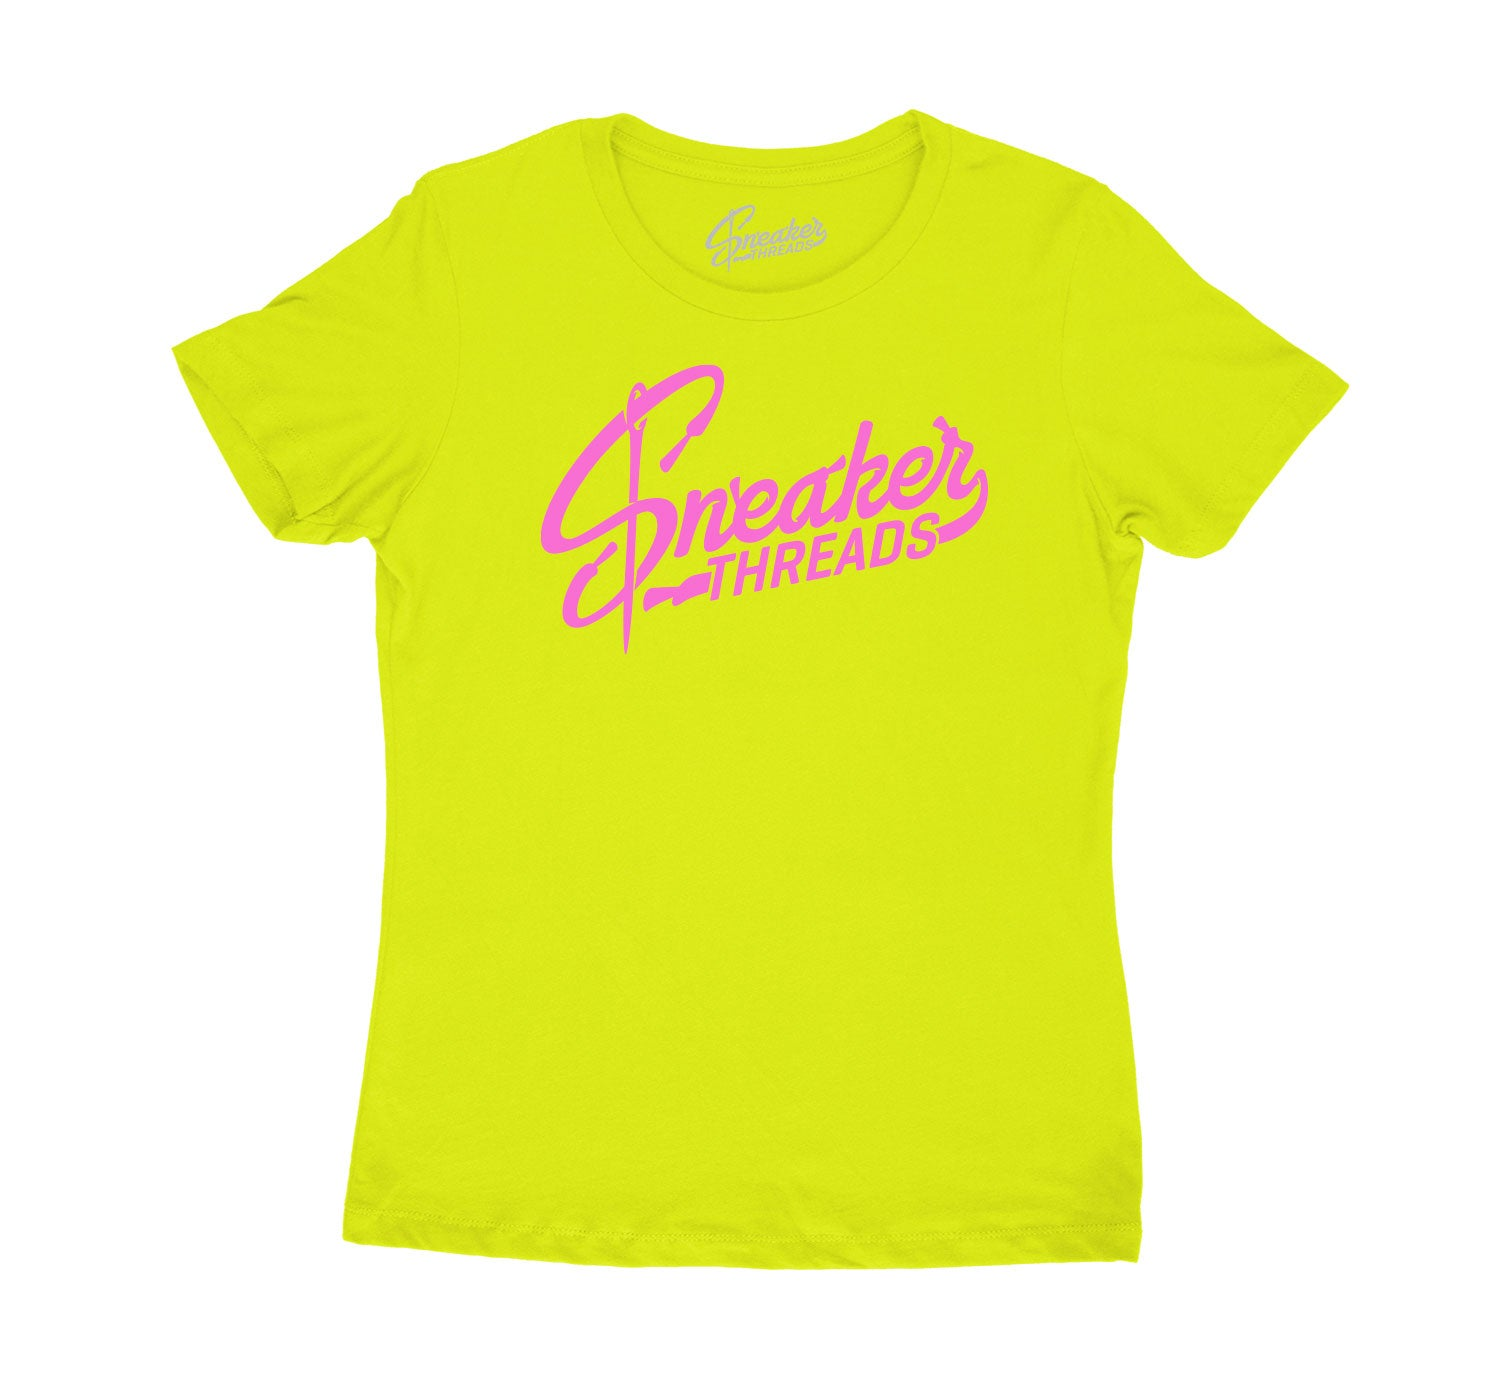 Jordan 4 Lemon Venom sneaker collection matches with woman shirts